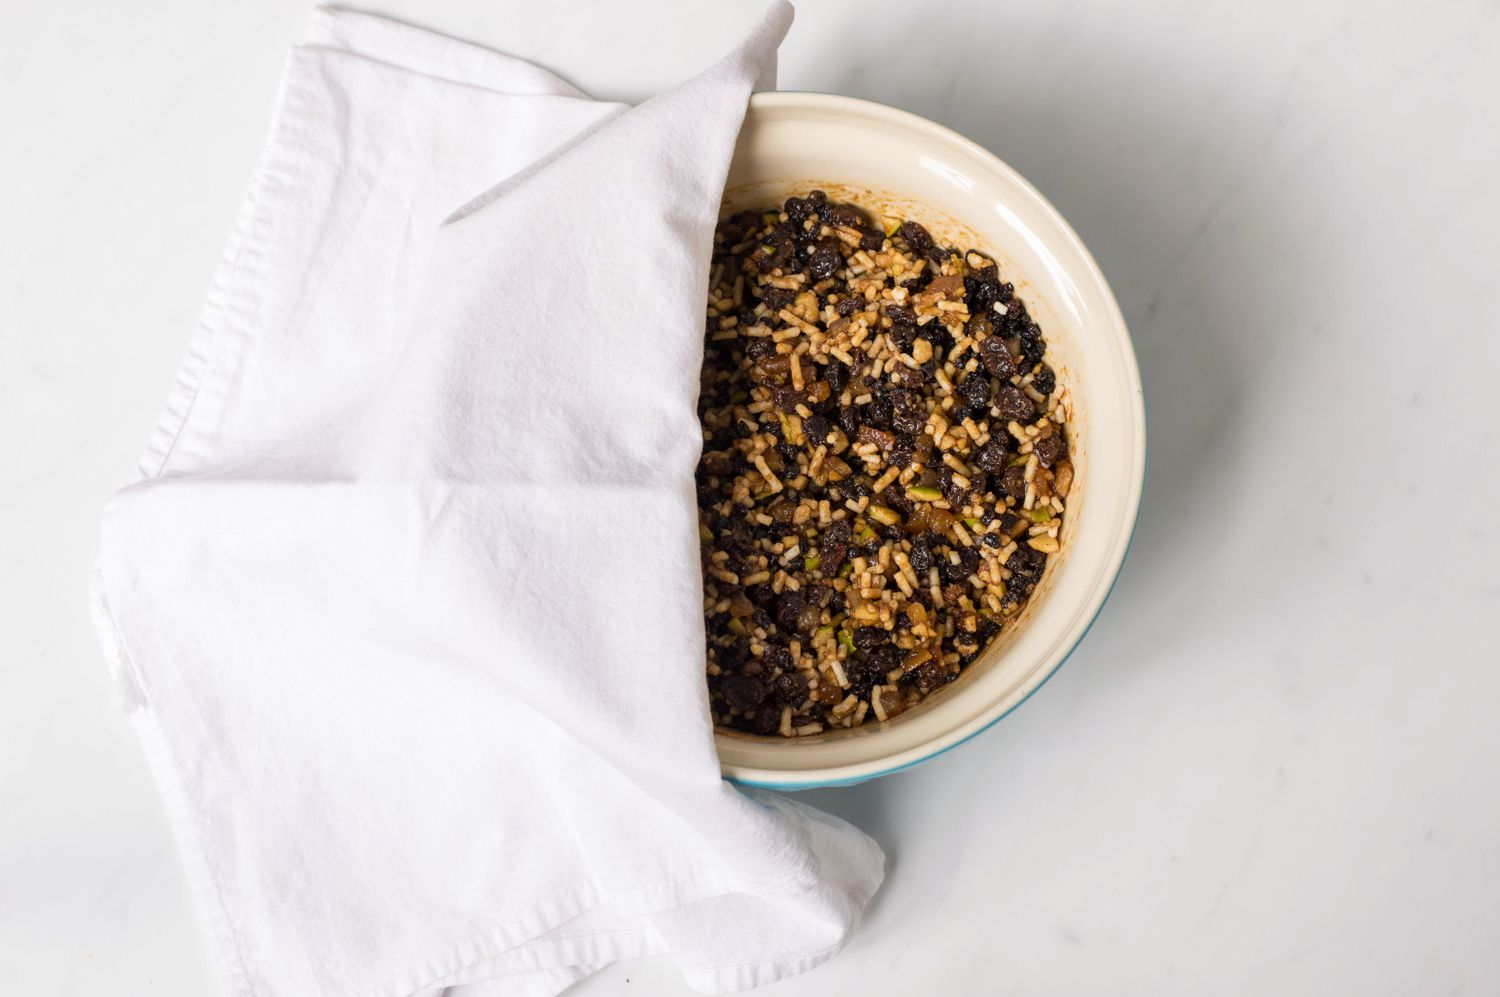 Mincemeat ingredients in a baking dish with a dish towel